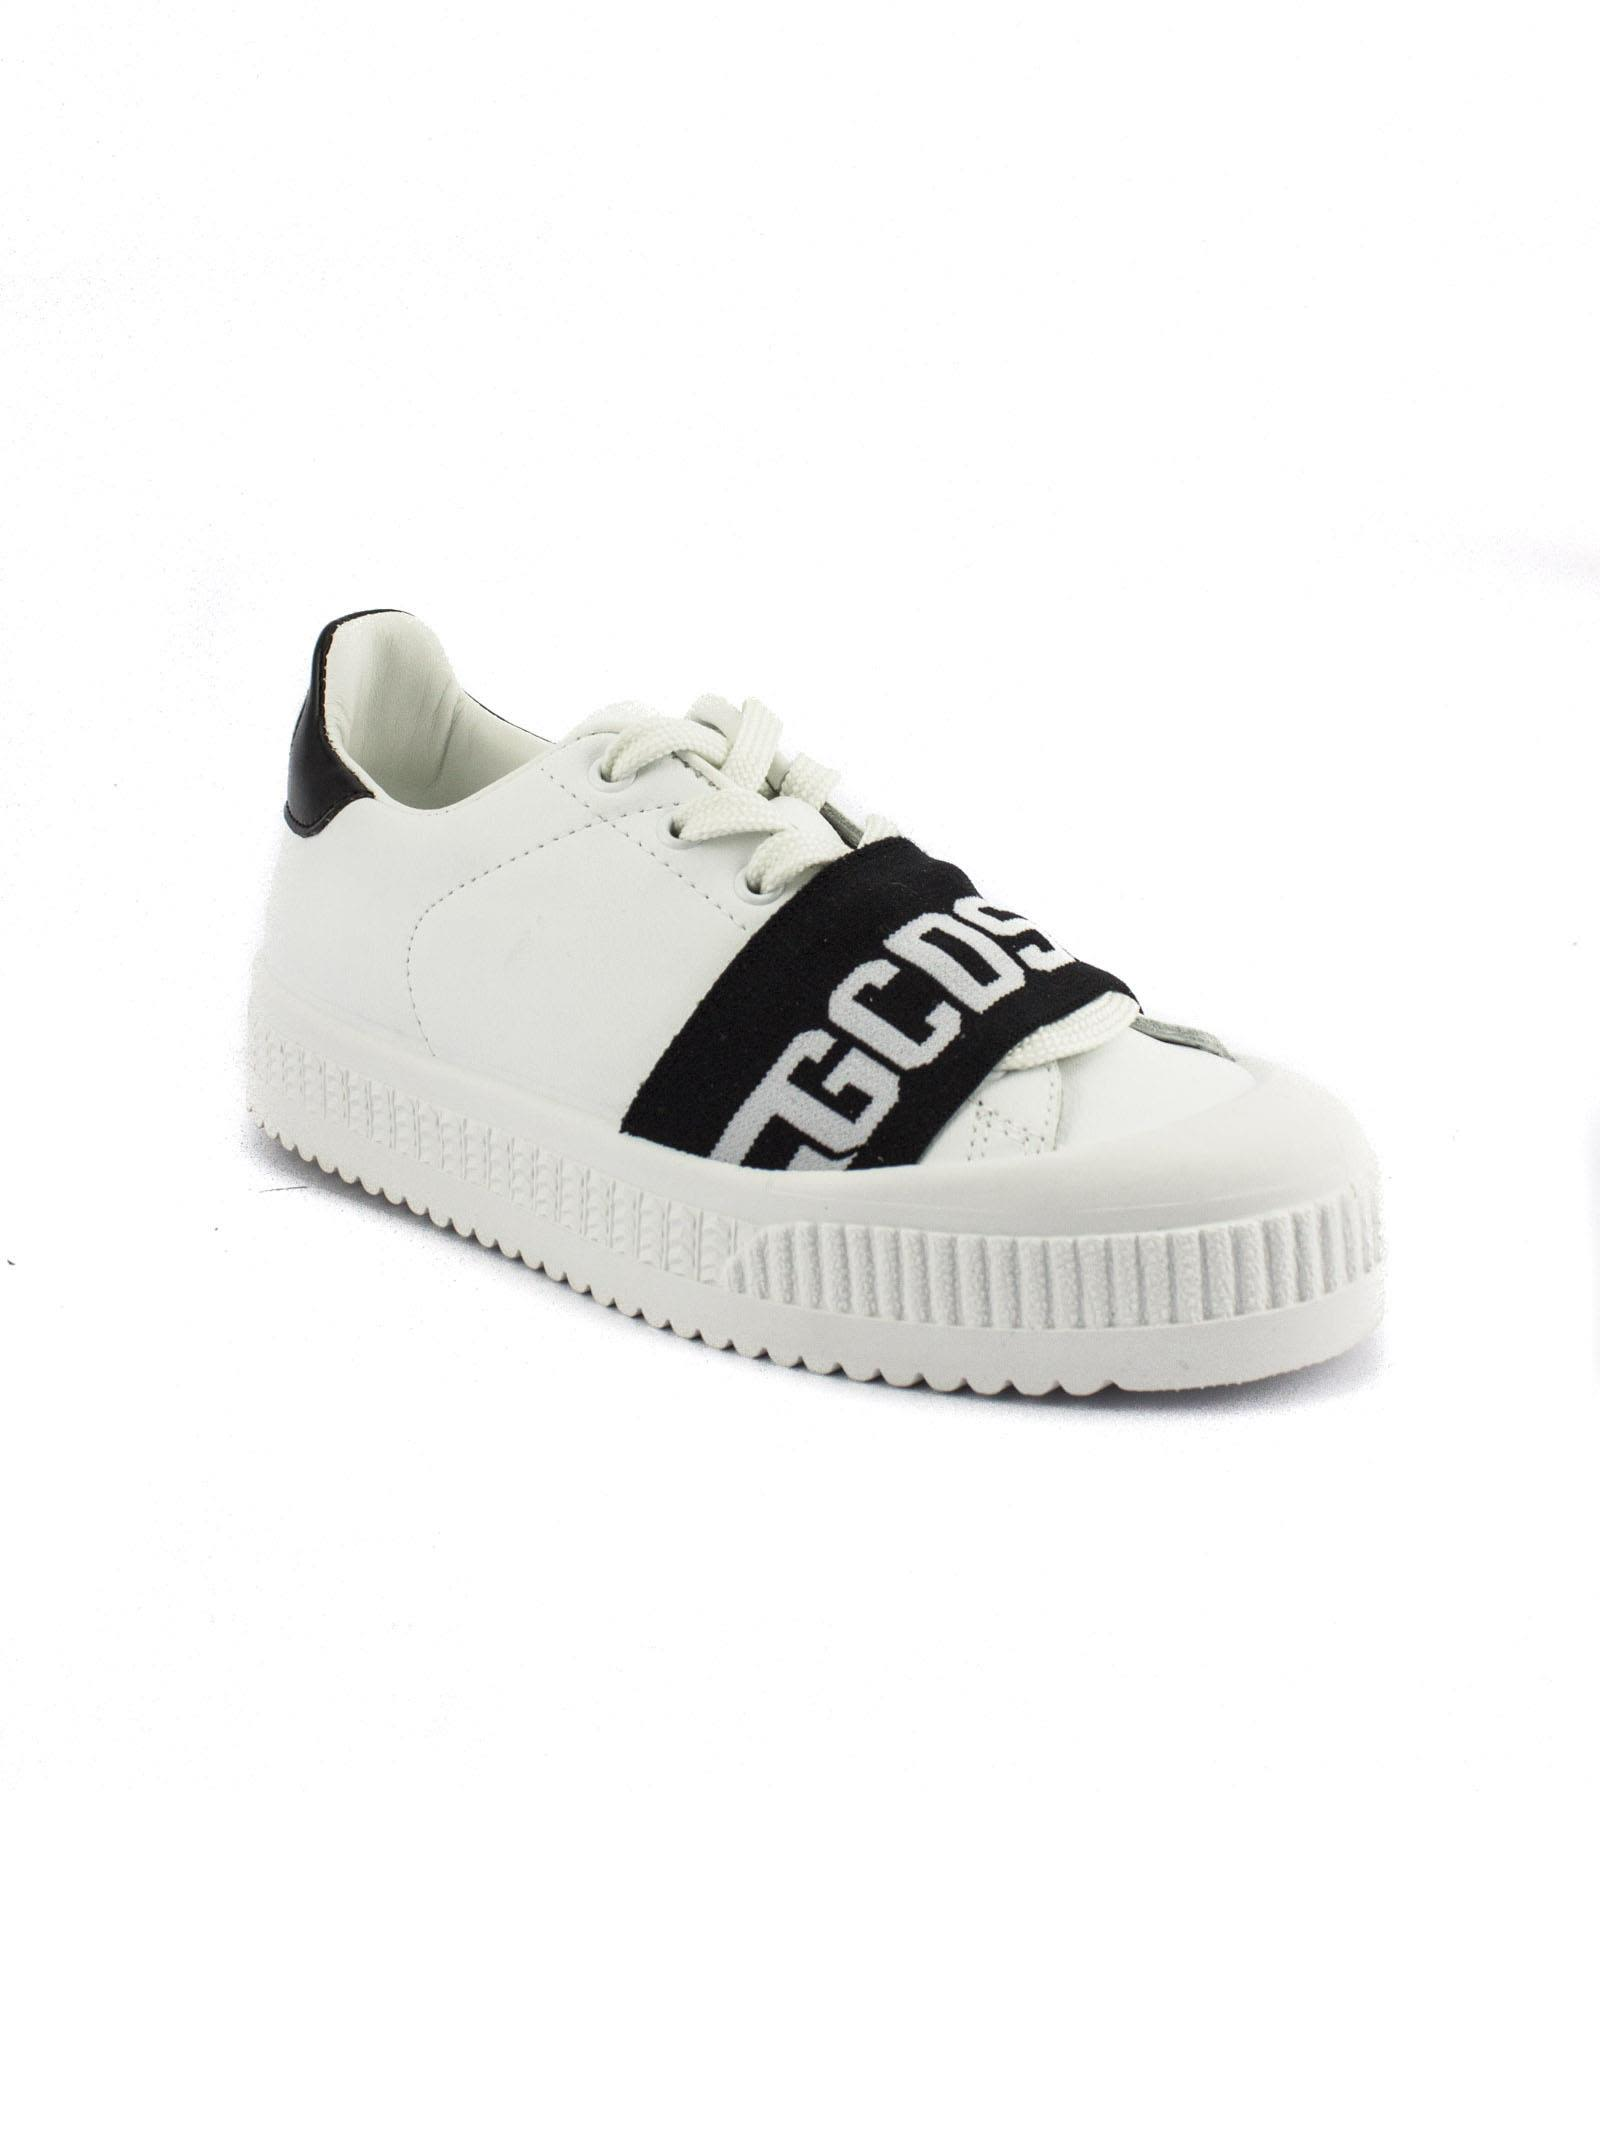 GCDS White Leather Sneaker With Black Elastic Logo Band. Cheap Top Quality For Sale Official Site Ost Release Dates Shopping Online For Sale Discount Low Shipping Fee 2DvwLxie23